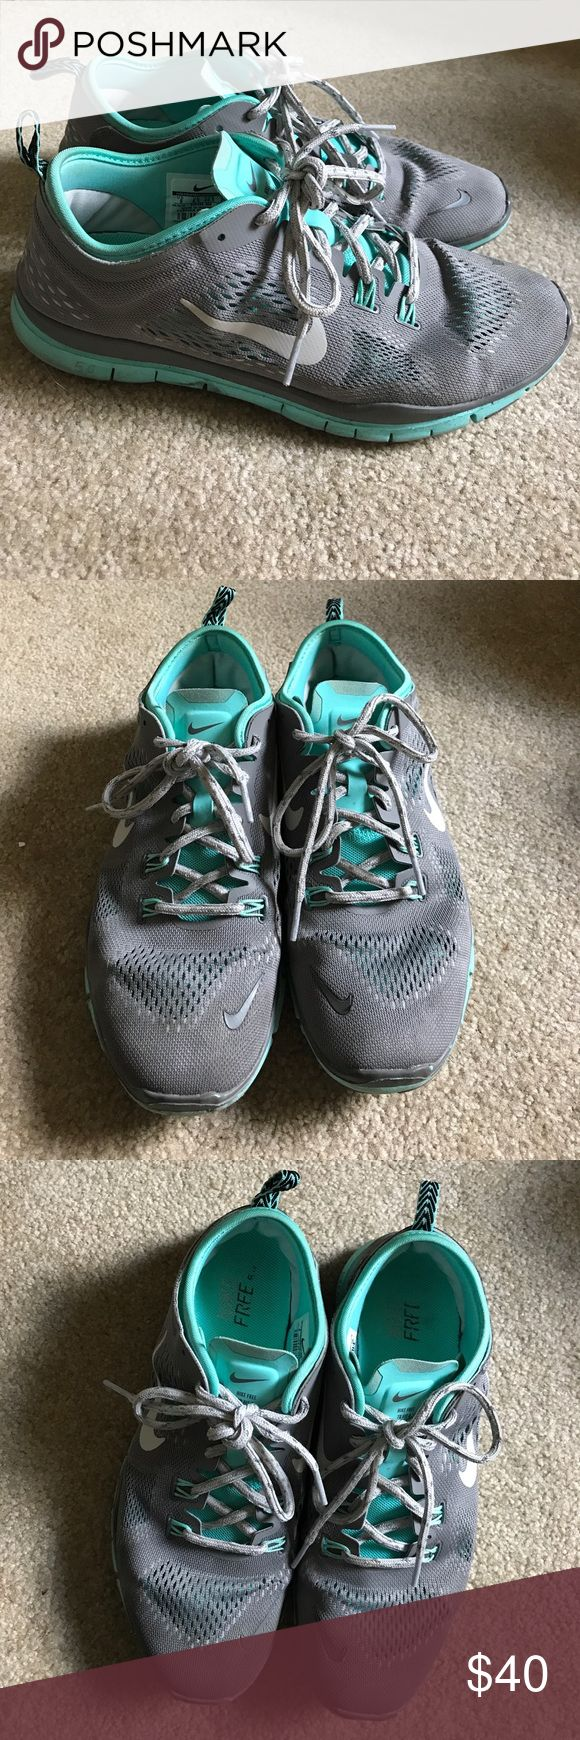 EUC Tiffany blue & gray Nike Free 5.0 These Tiffany blue and gray Nike free 5.0 shoes are still in excellent condition!! They came out in 2015, were hardly worn, and have been sitting in my closet, in a box, for over a year! Ready to give these to a new home! Nike Shoes Athletic Shoes